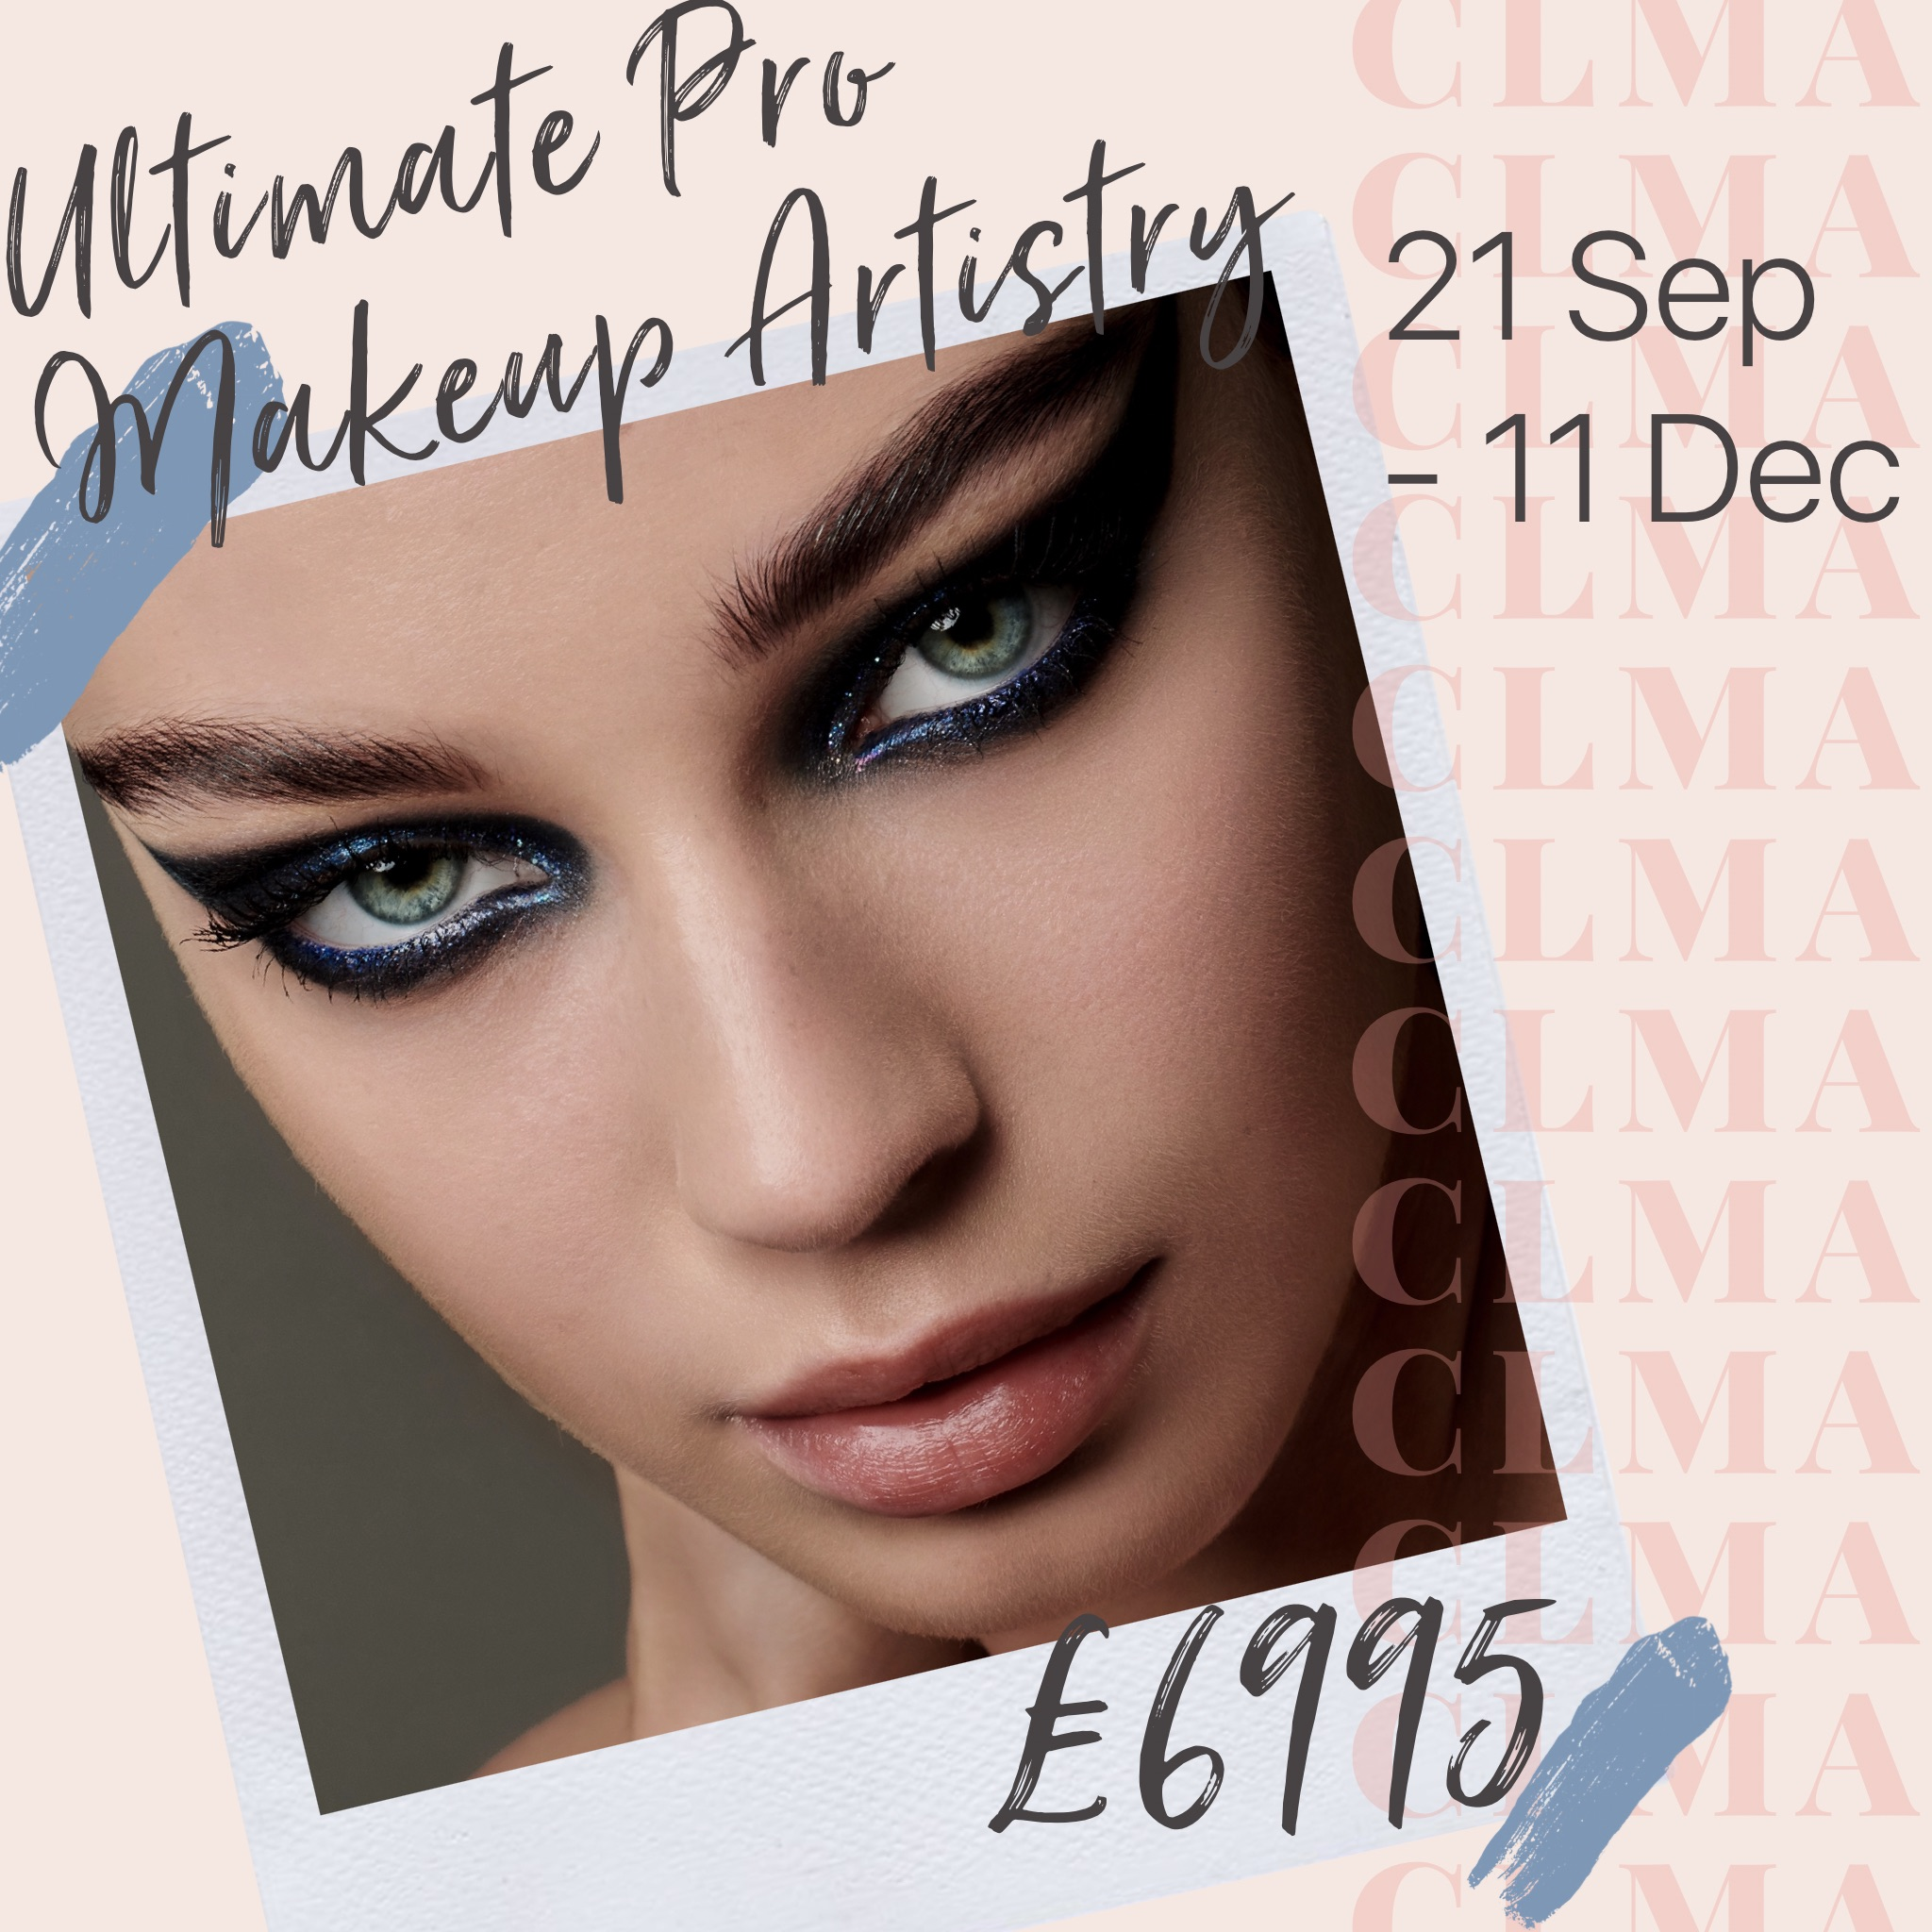 Ultimate Pro Makeup Artistry Makeup Course